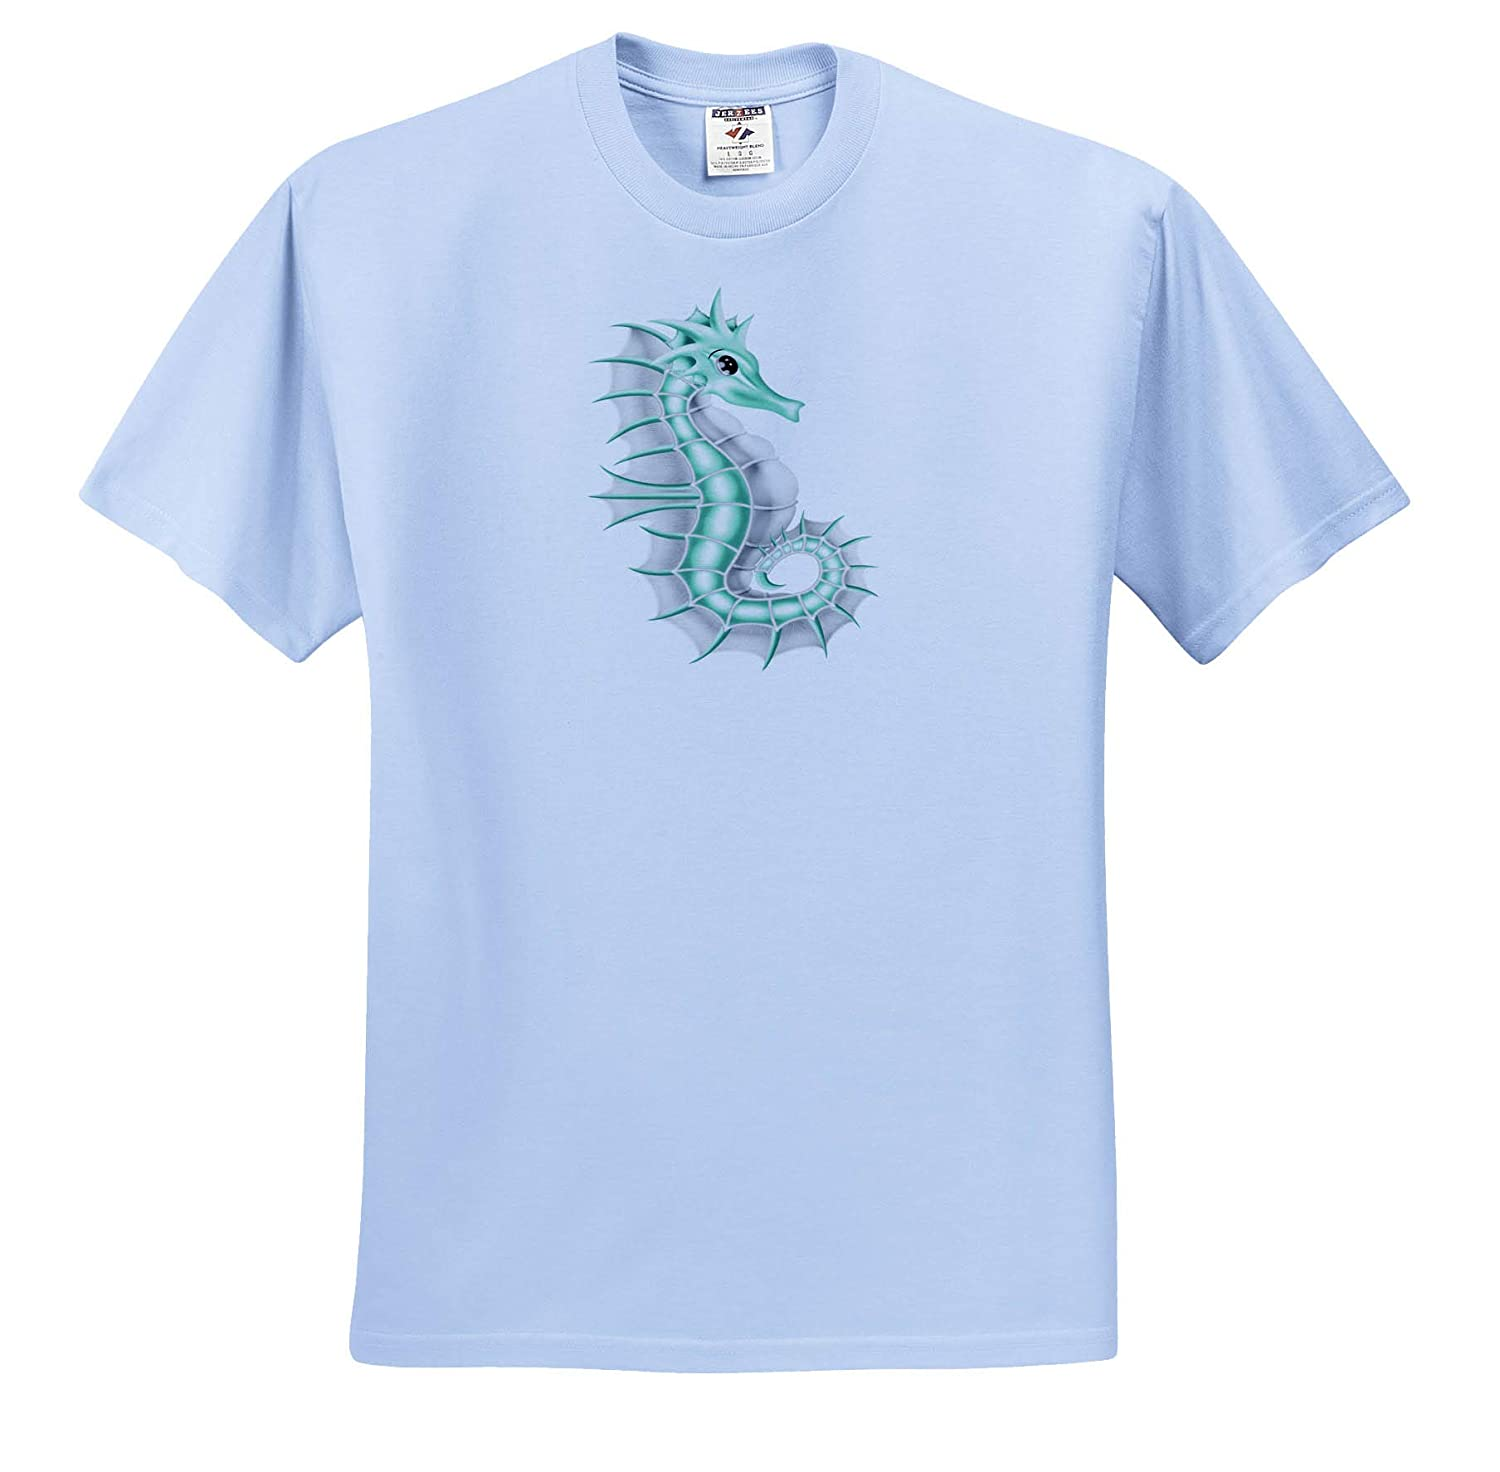 ts/_317935 Illustrations Adult T-Shirt XL 3dRose Anne Marie Baugh Green and White Seahorse Illustration